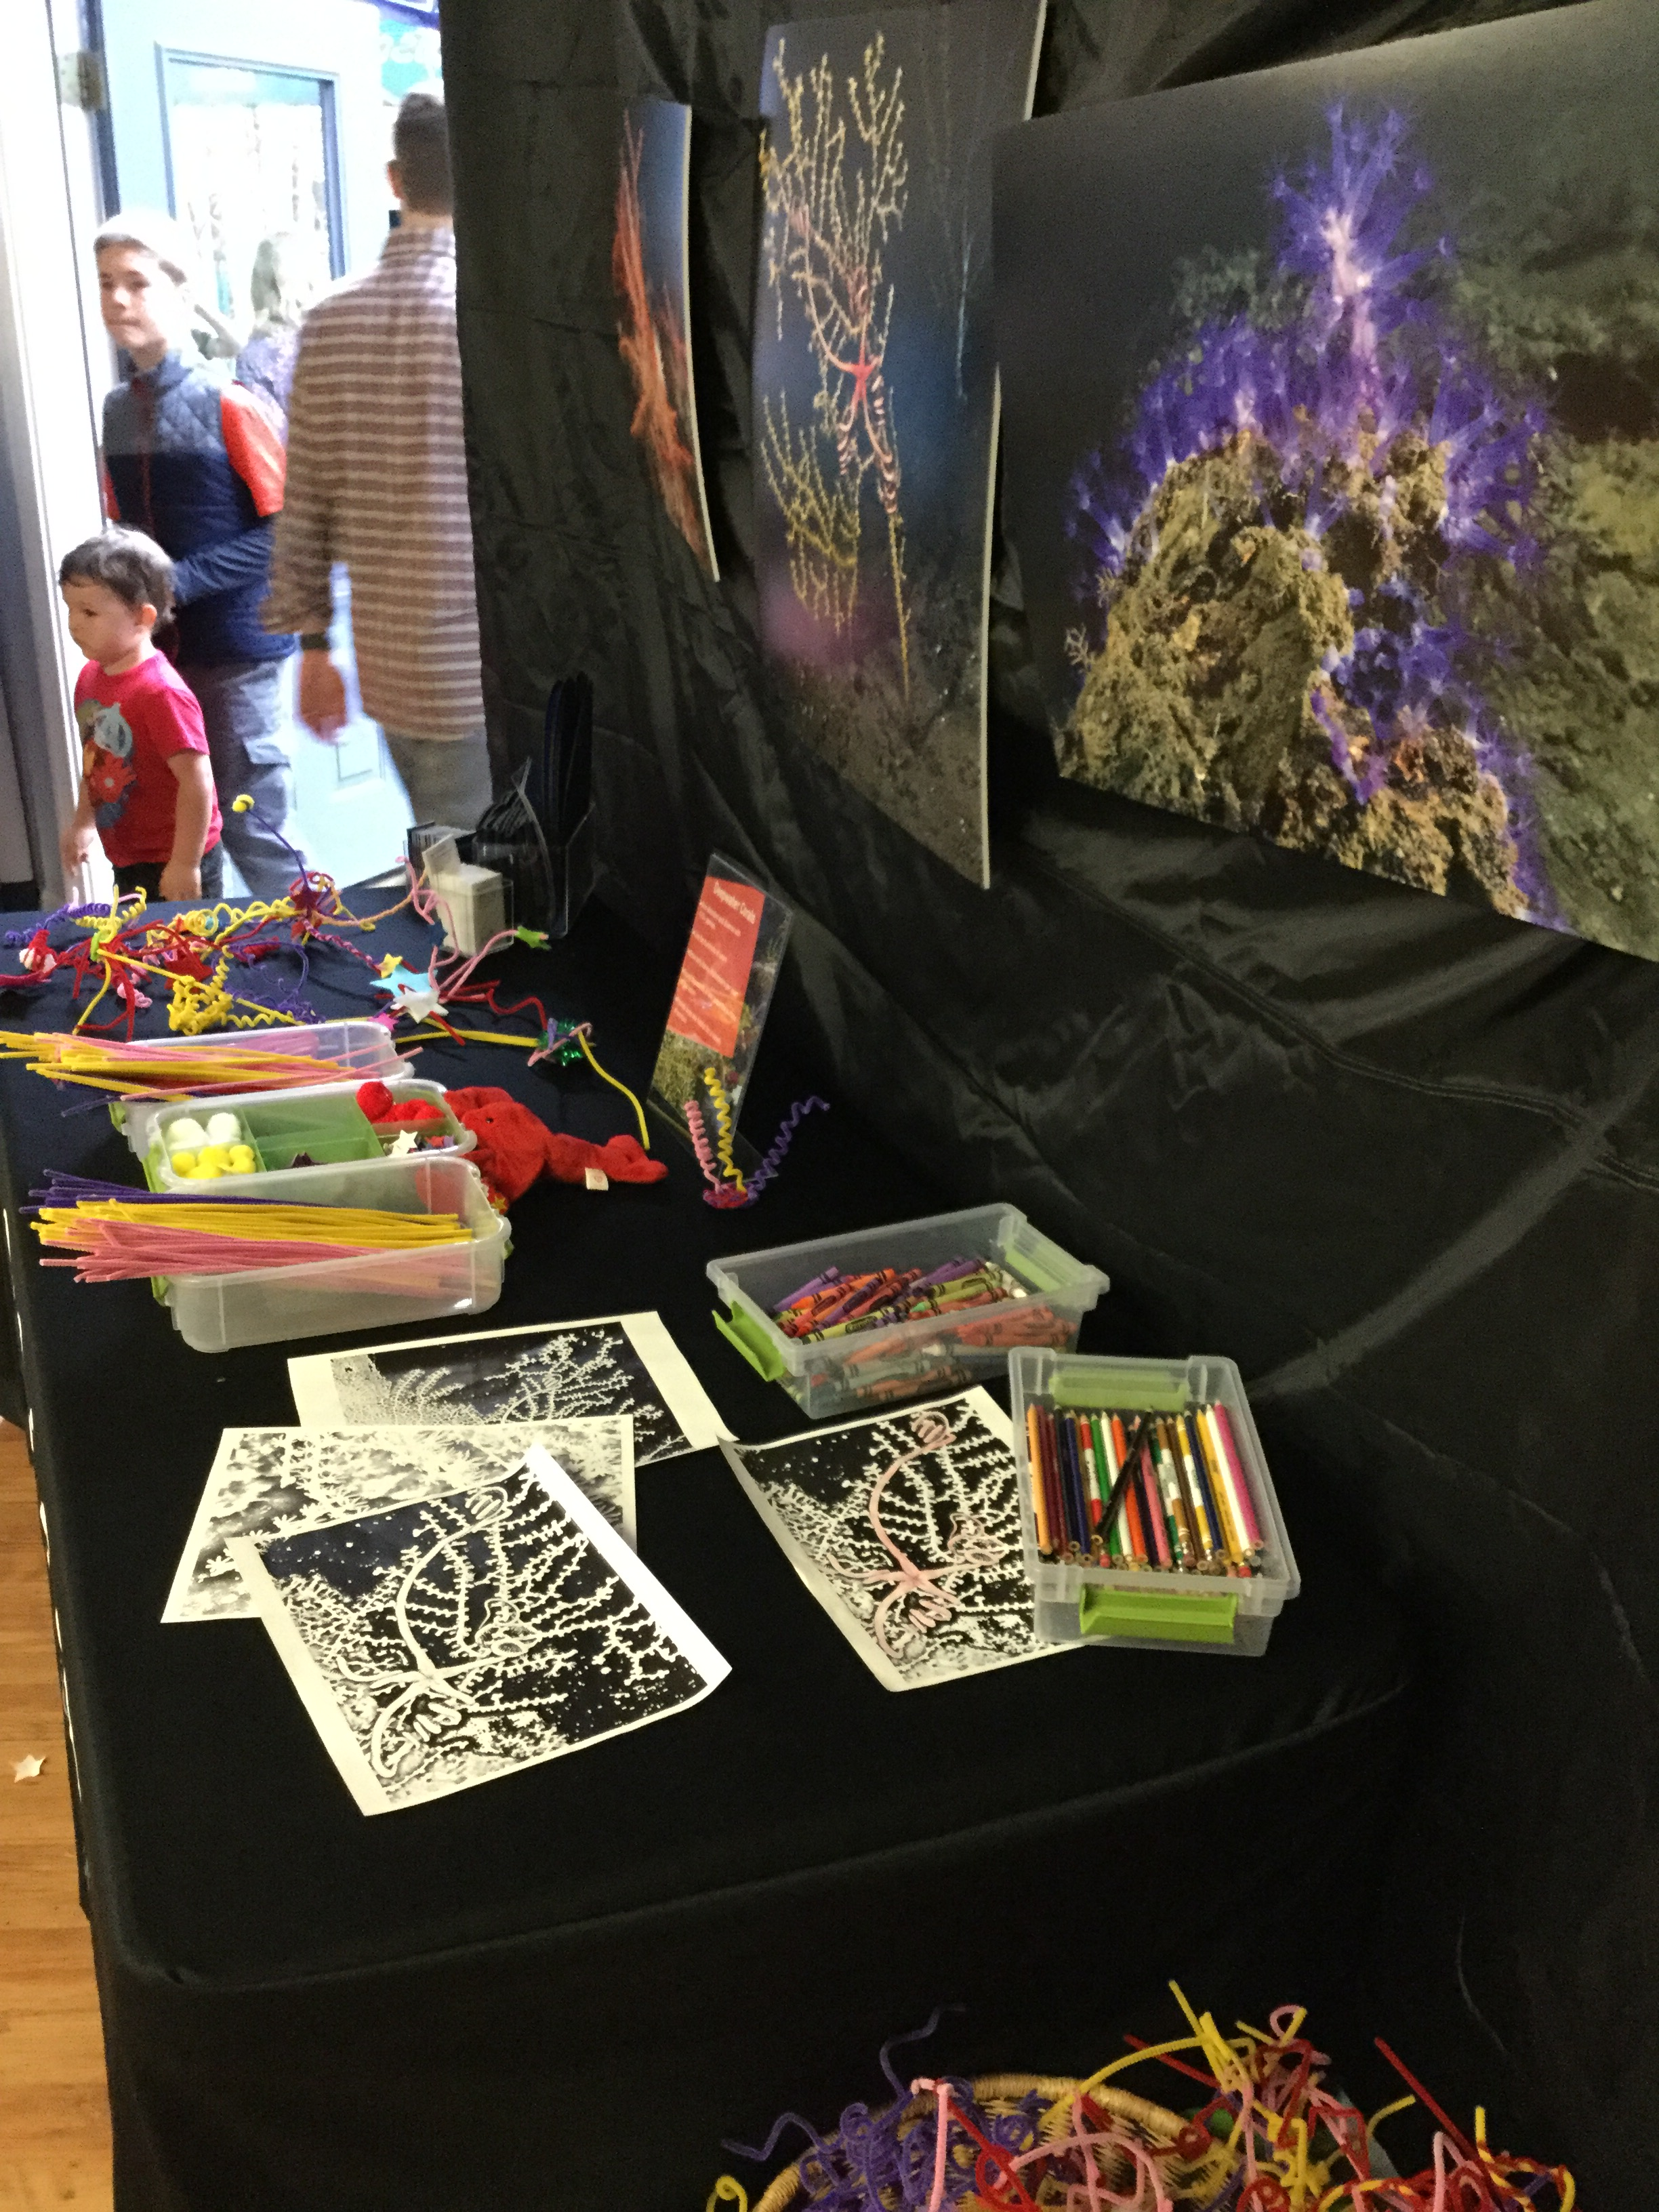 <div style='color:#000000;'><br /><br /><h2>Athens Montessori Fall Festival 2015- Build, draw, learn about deep sea coral station</h2>(C)&nbsp;ECOGIG</div>